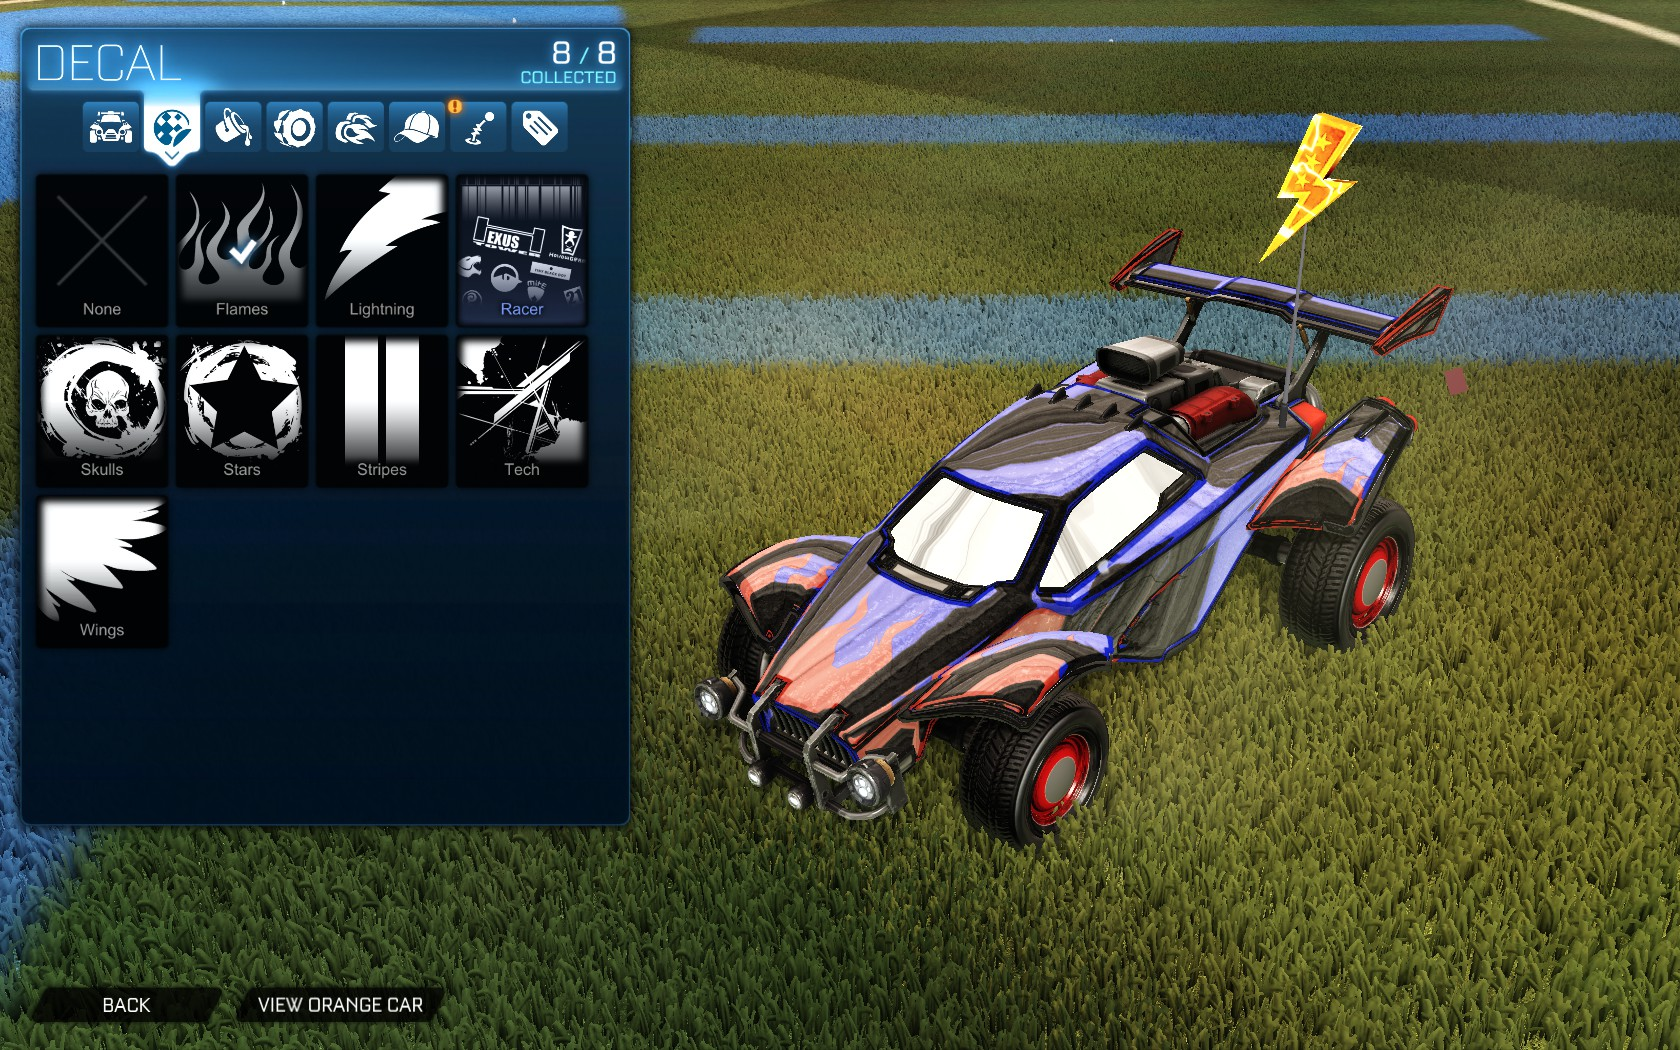 EPIC CLEAN DECAL (FOR ALL CARS)